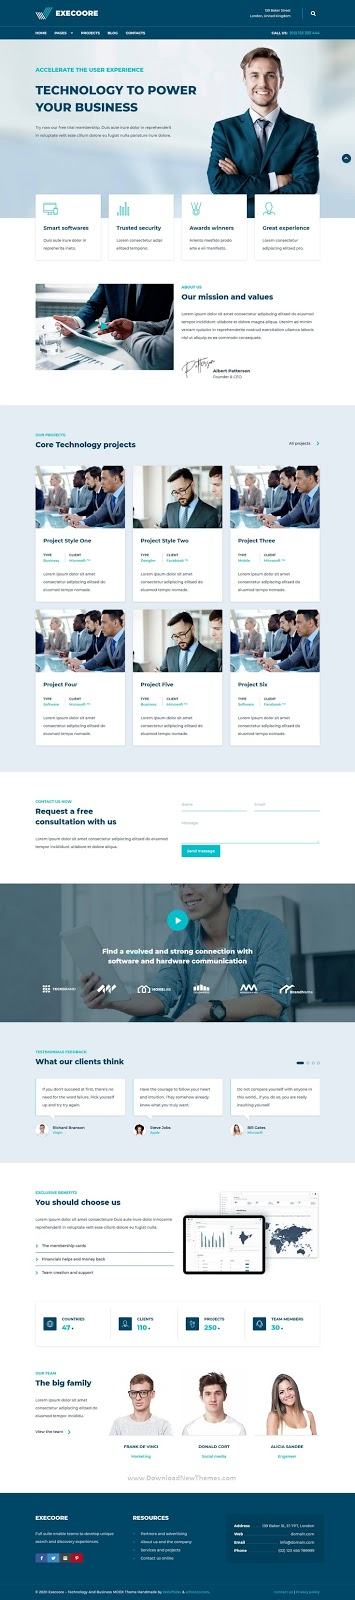 Best Technology And Business Theme